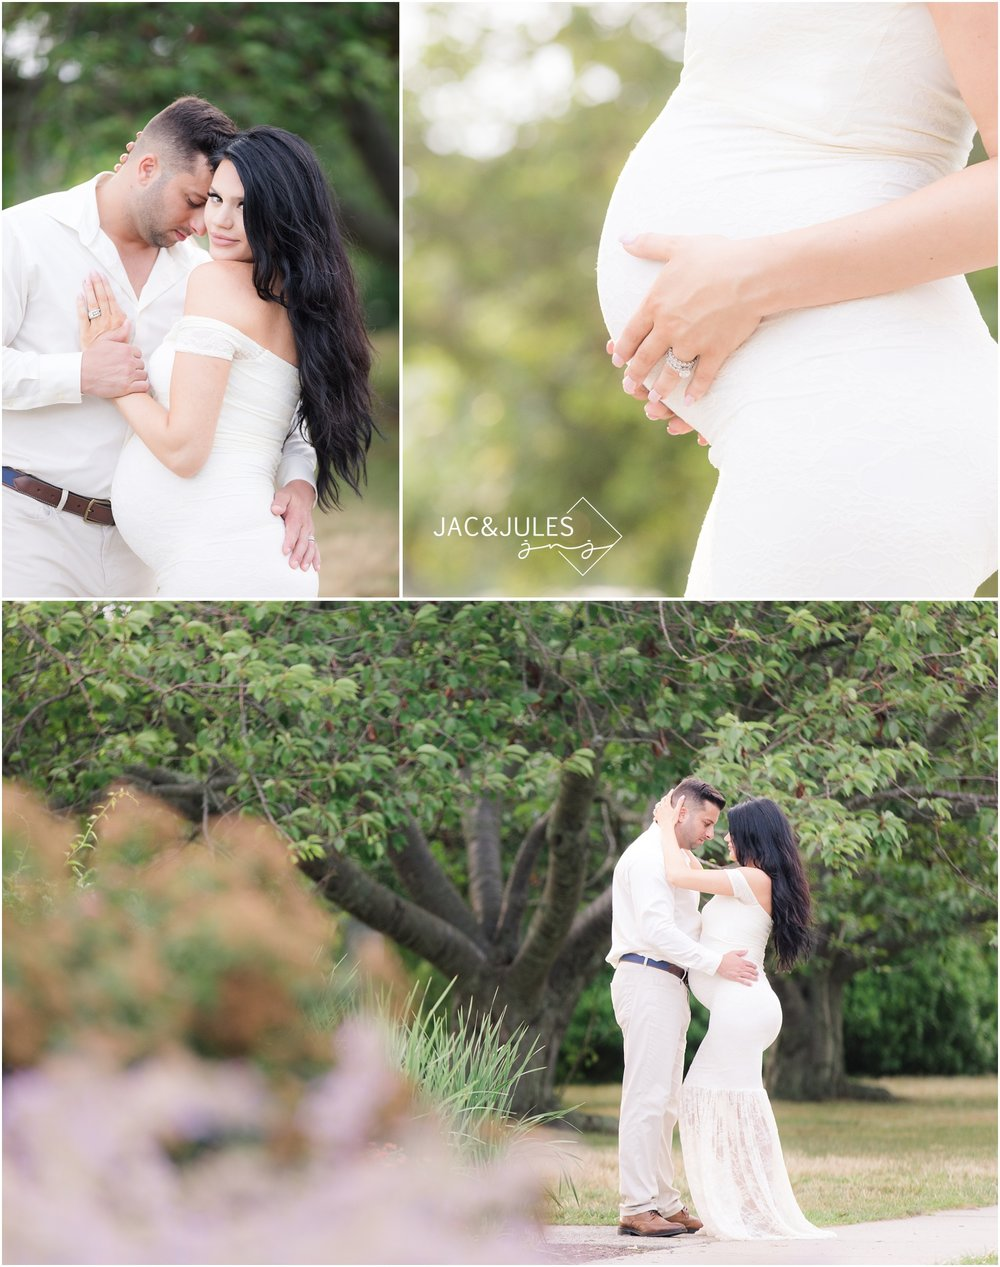 Intimate Pretty maternity photos of expectant couple in Spring Lake, NJ